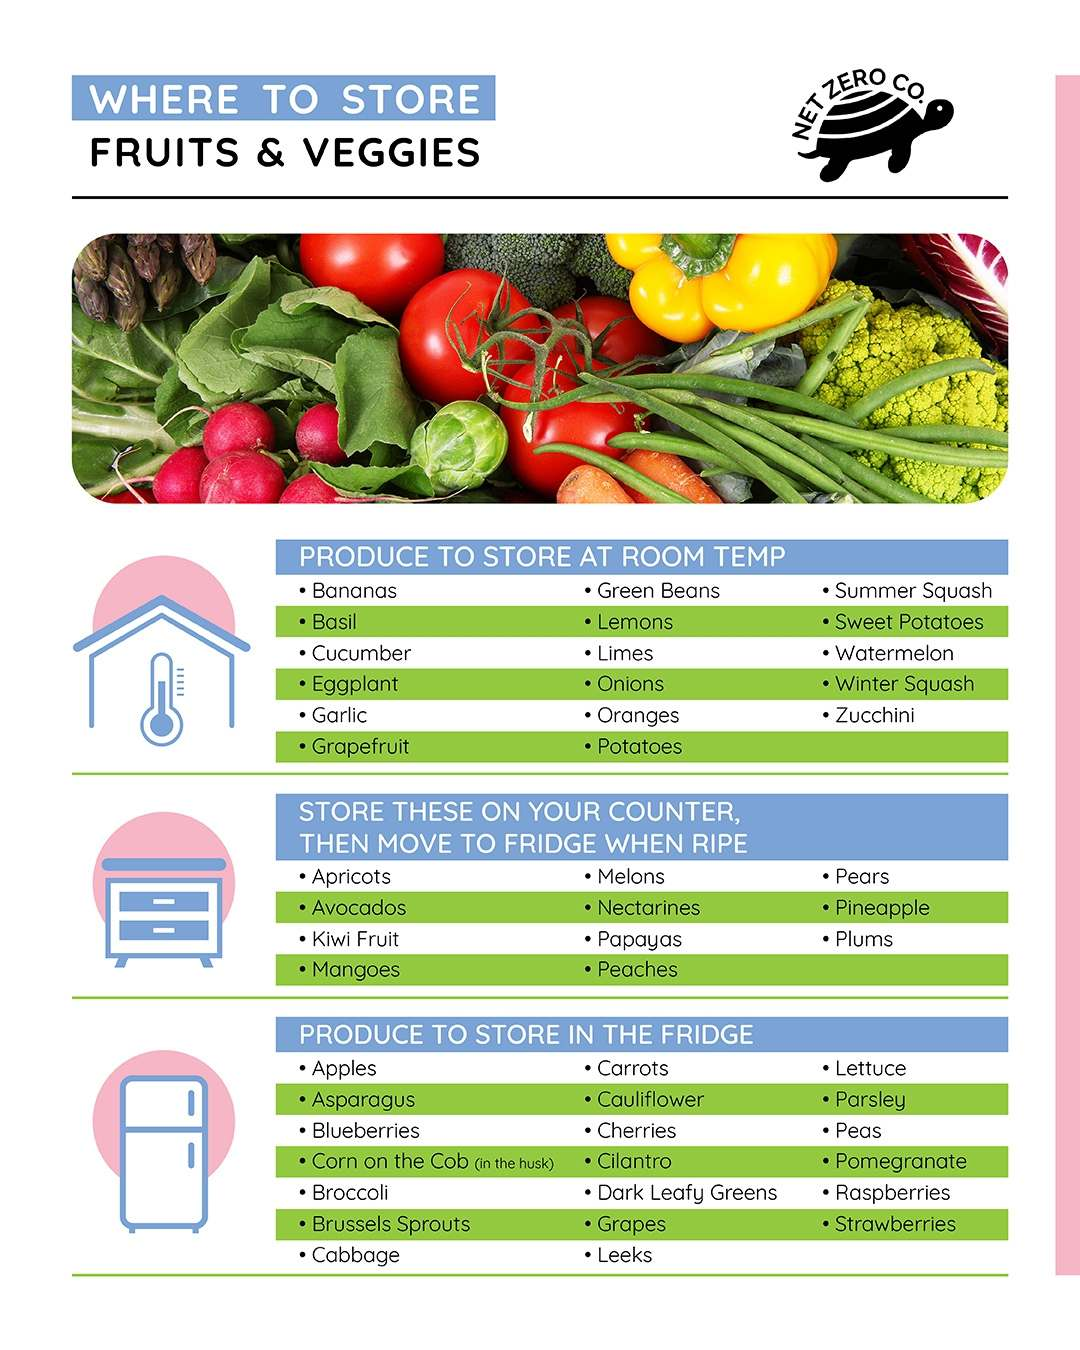 Where to Store Fruits and Veggies